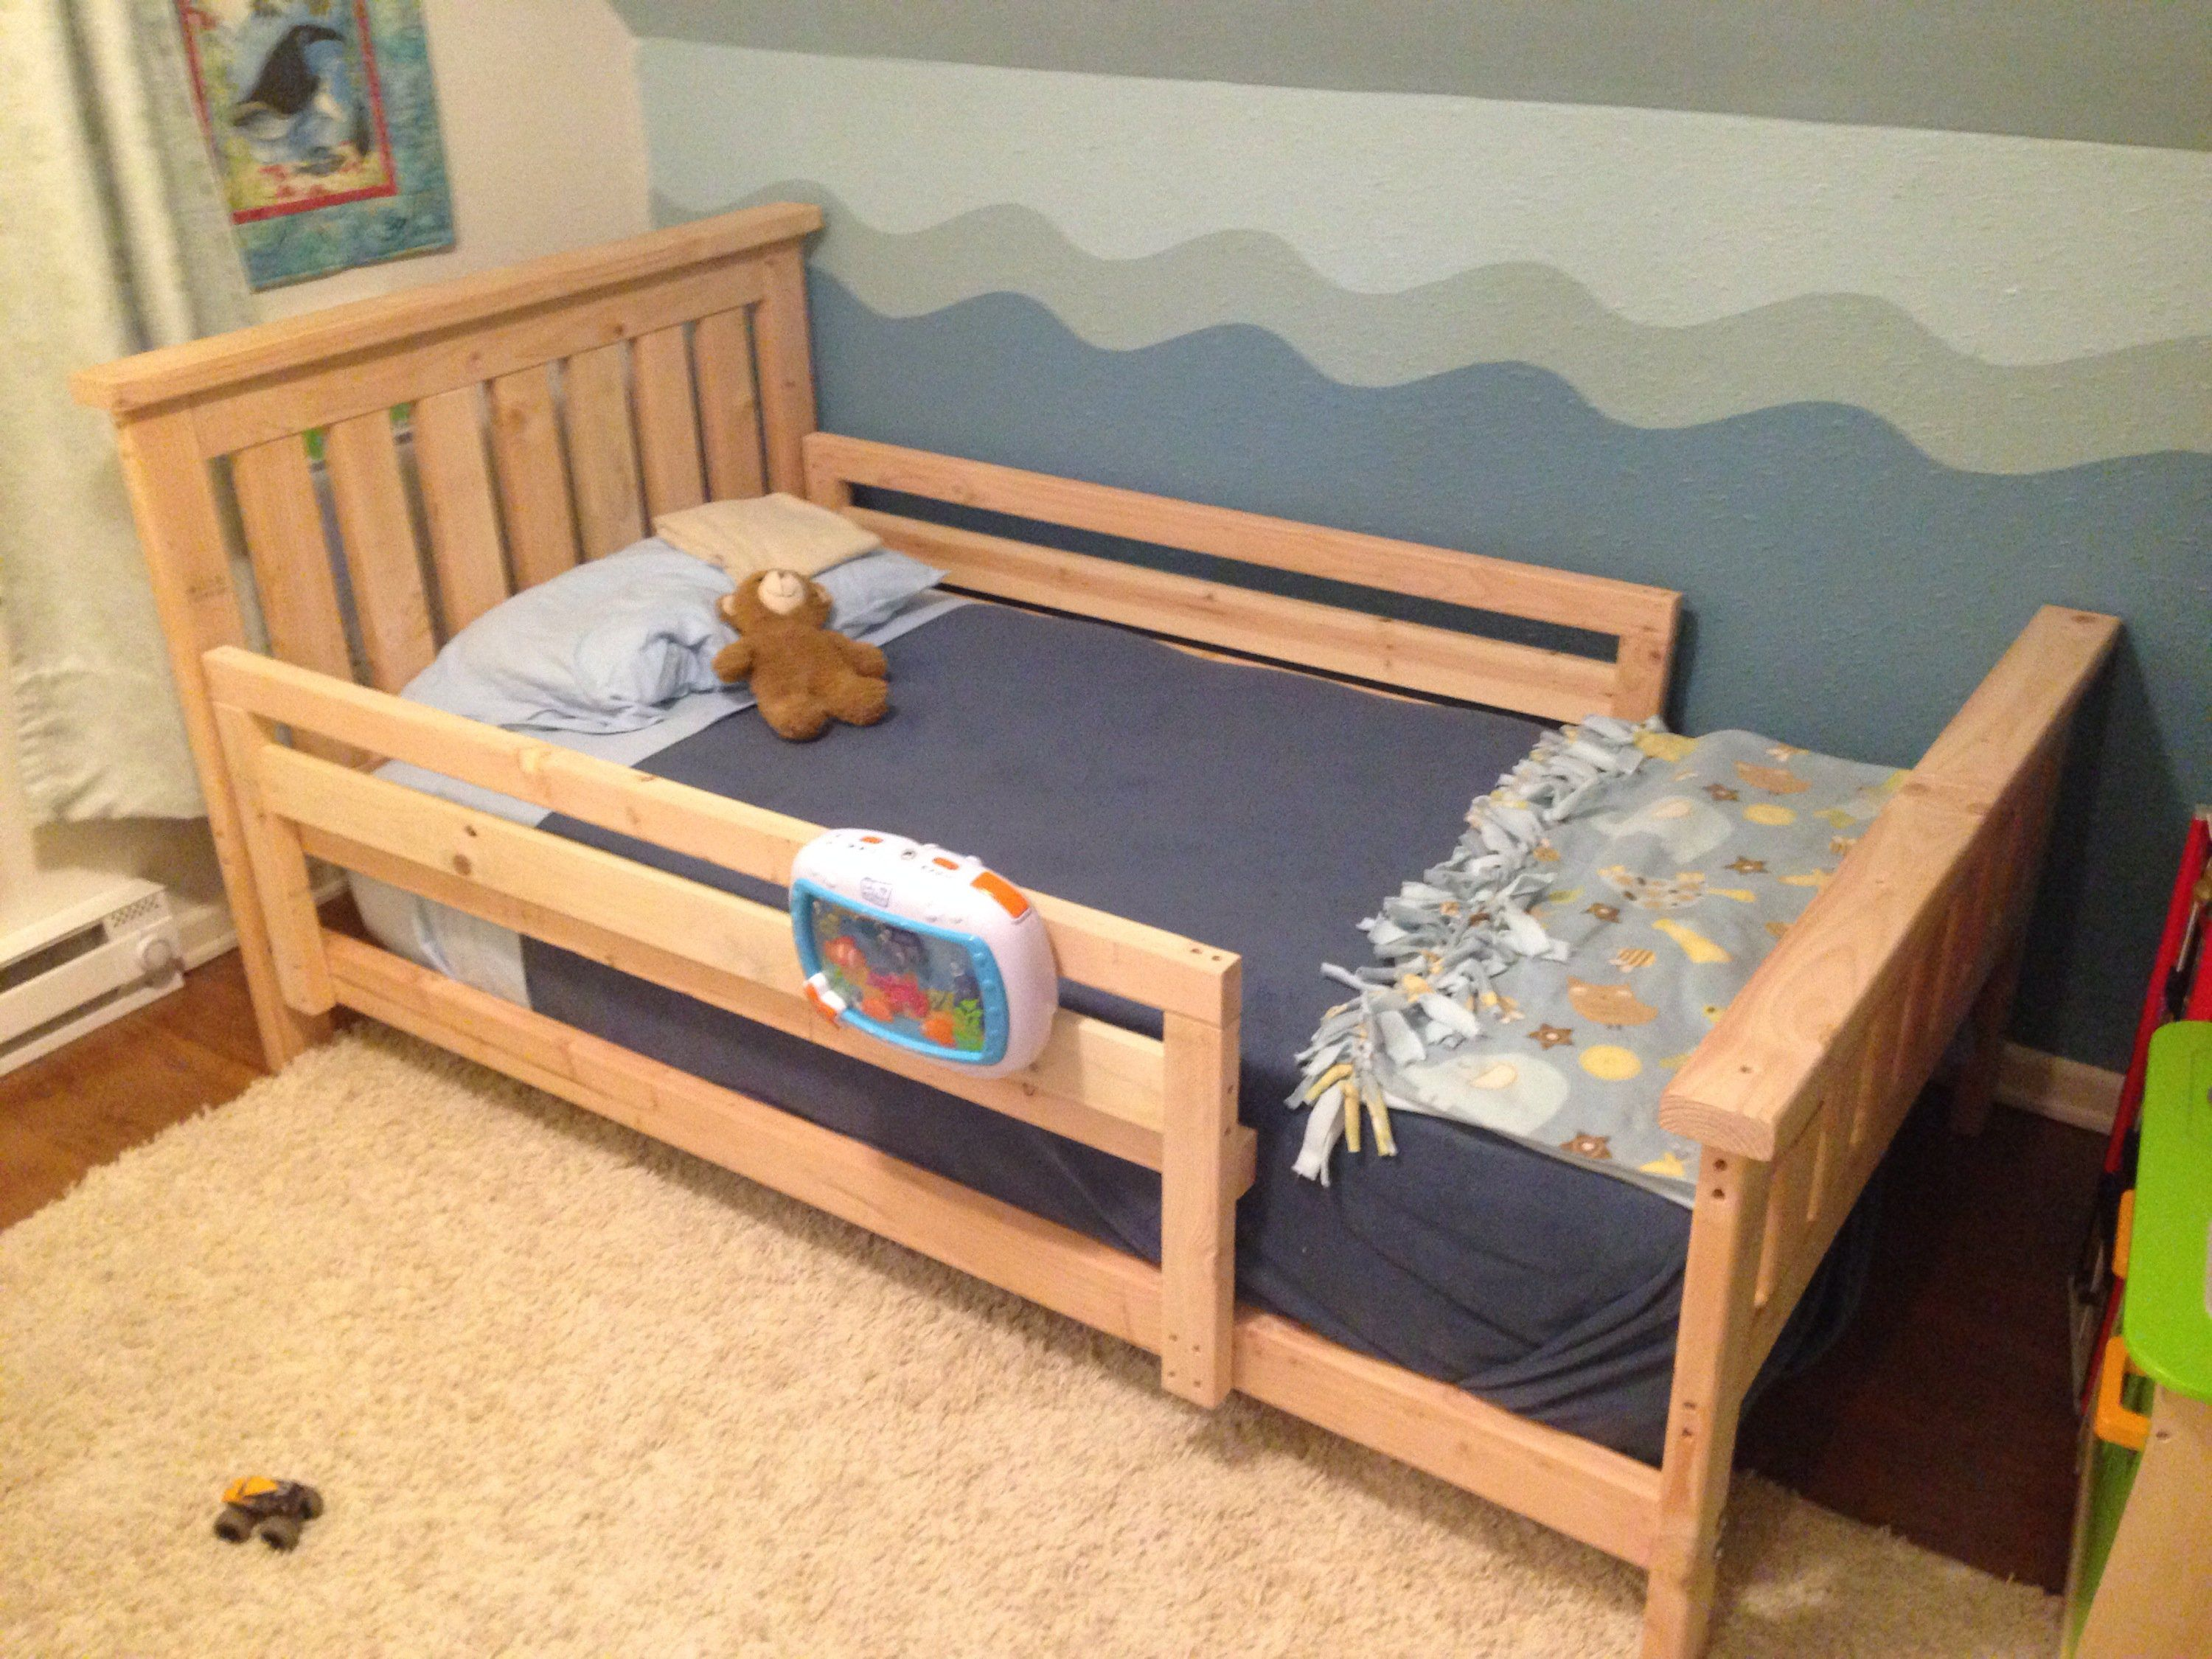 DIY 2×4 Bed Frame Diy toddler bed, Toddler twin bed